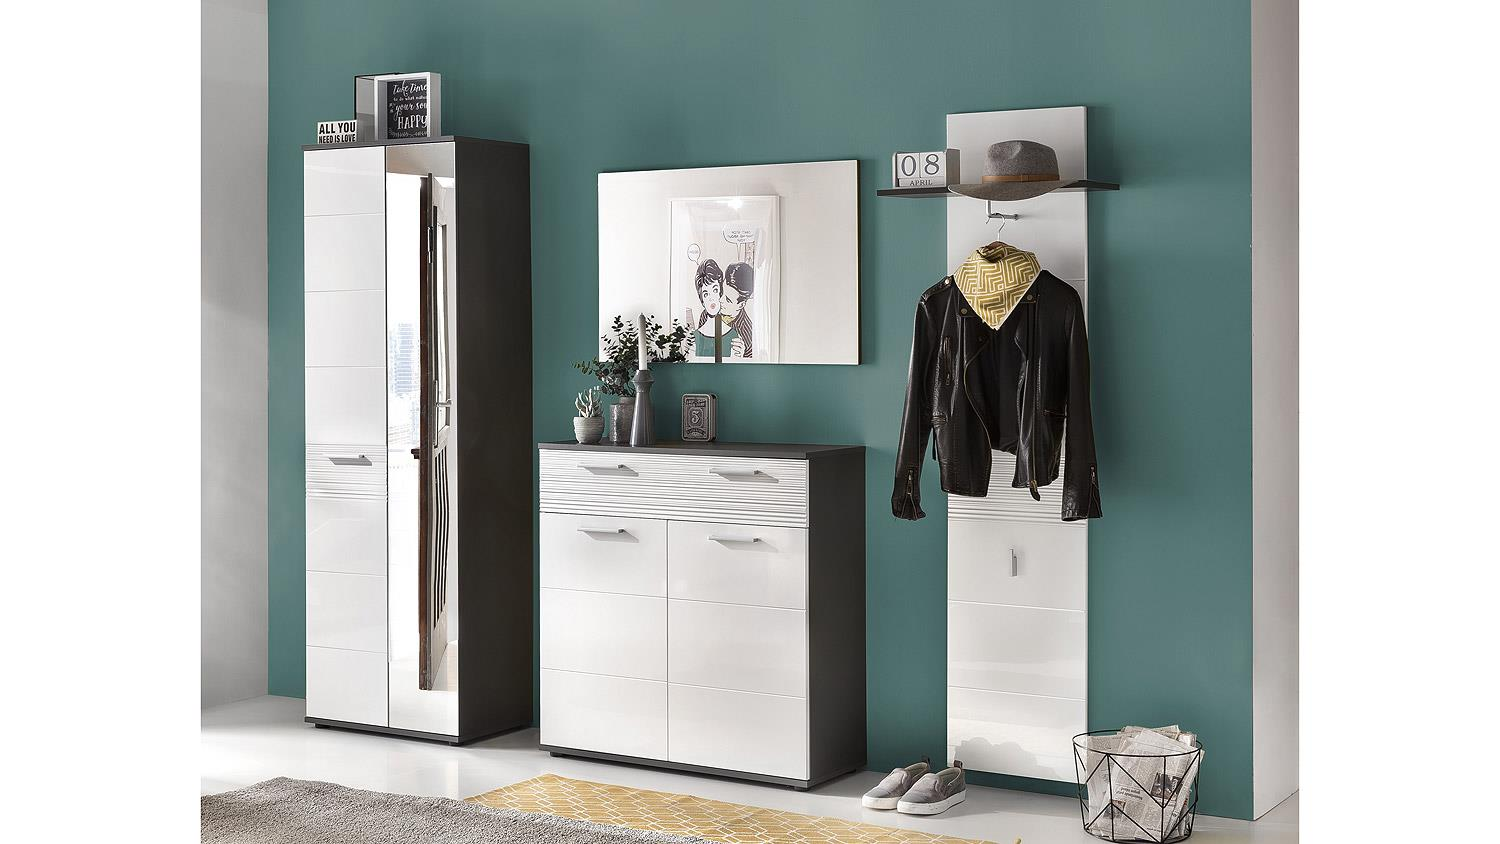 garderobenset smart garderobe flurm bel in wei hochglanz und grau. Black Bedroom Furniture Sets. Home Design Ideas